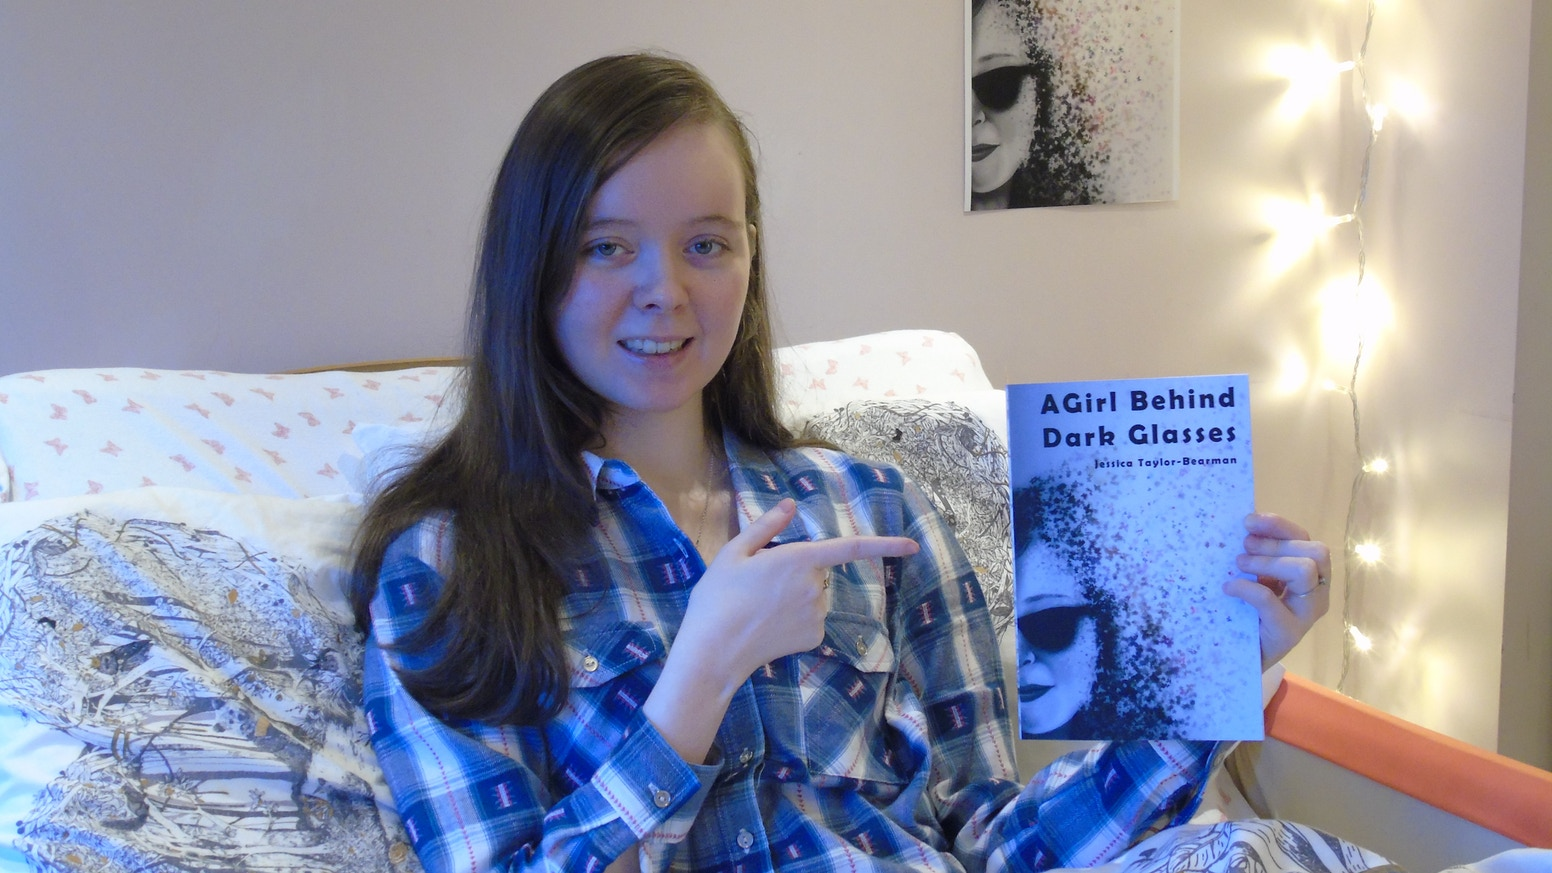 jessica taylor bearman in bed, wearing pyjamas and pointing to other hand, holding grey 'a girl behind dark glasses' book